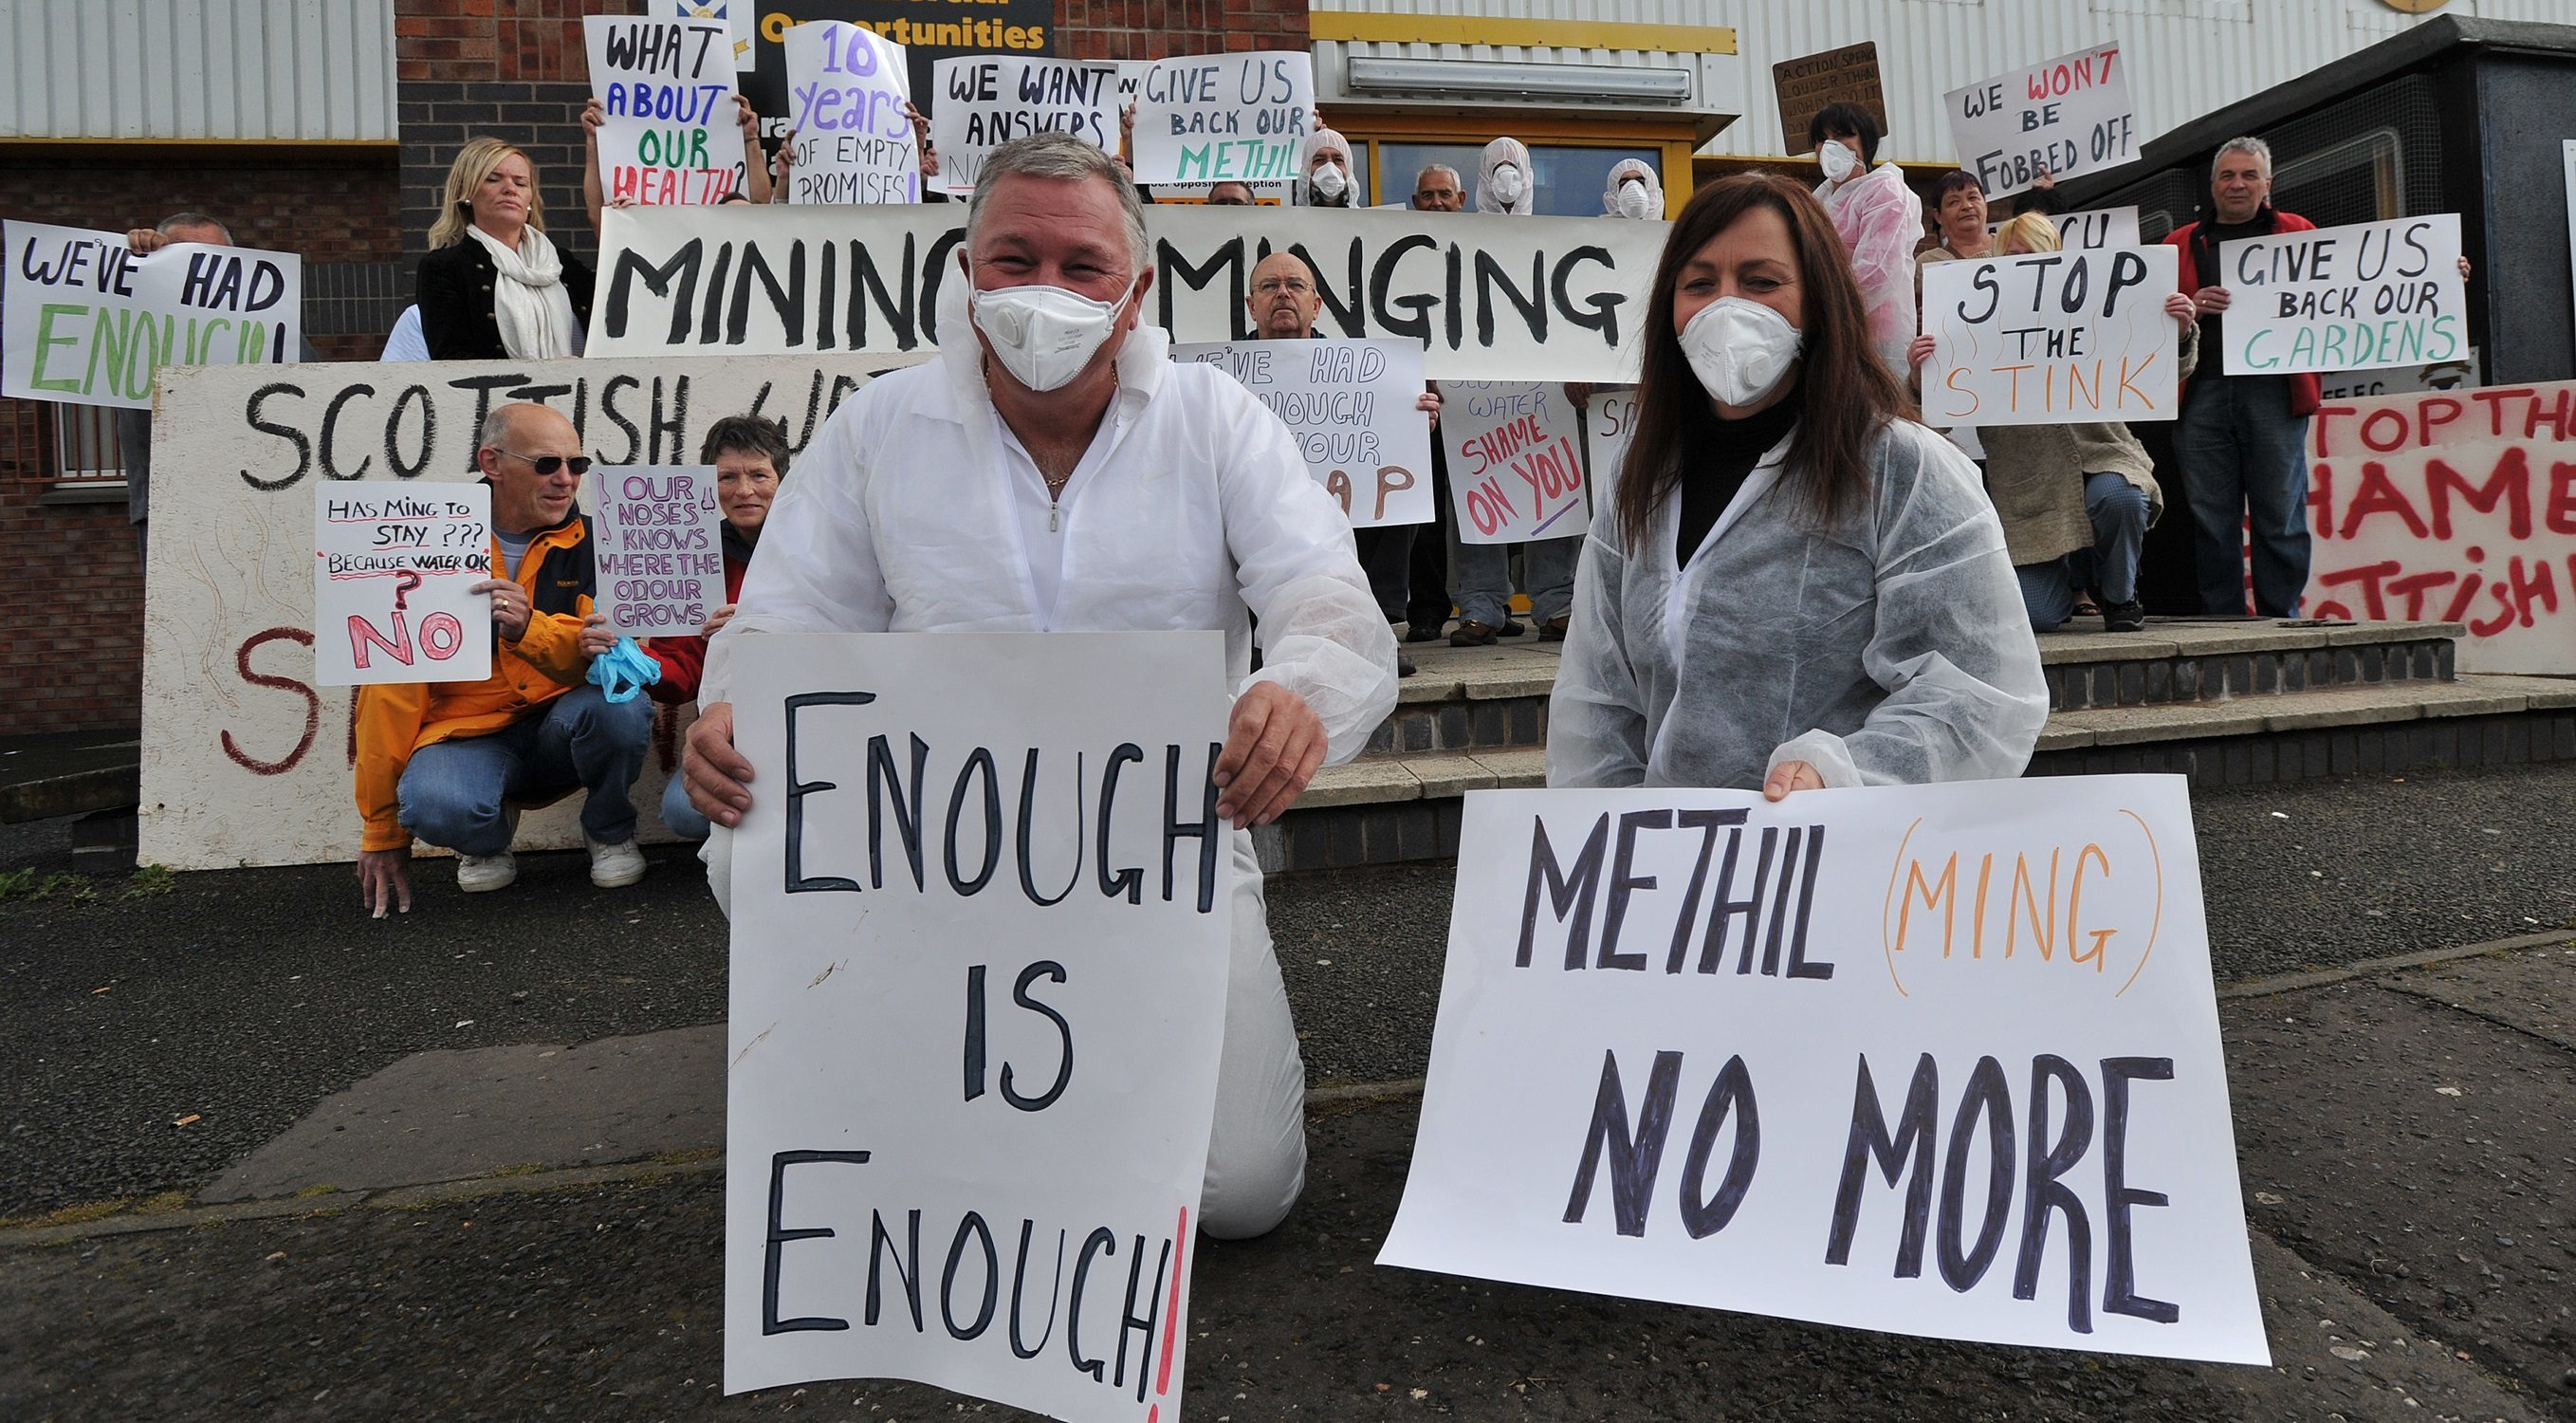 Methil ming protesters lobbied a meeting with Scottish Water in 2012